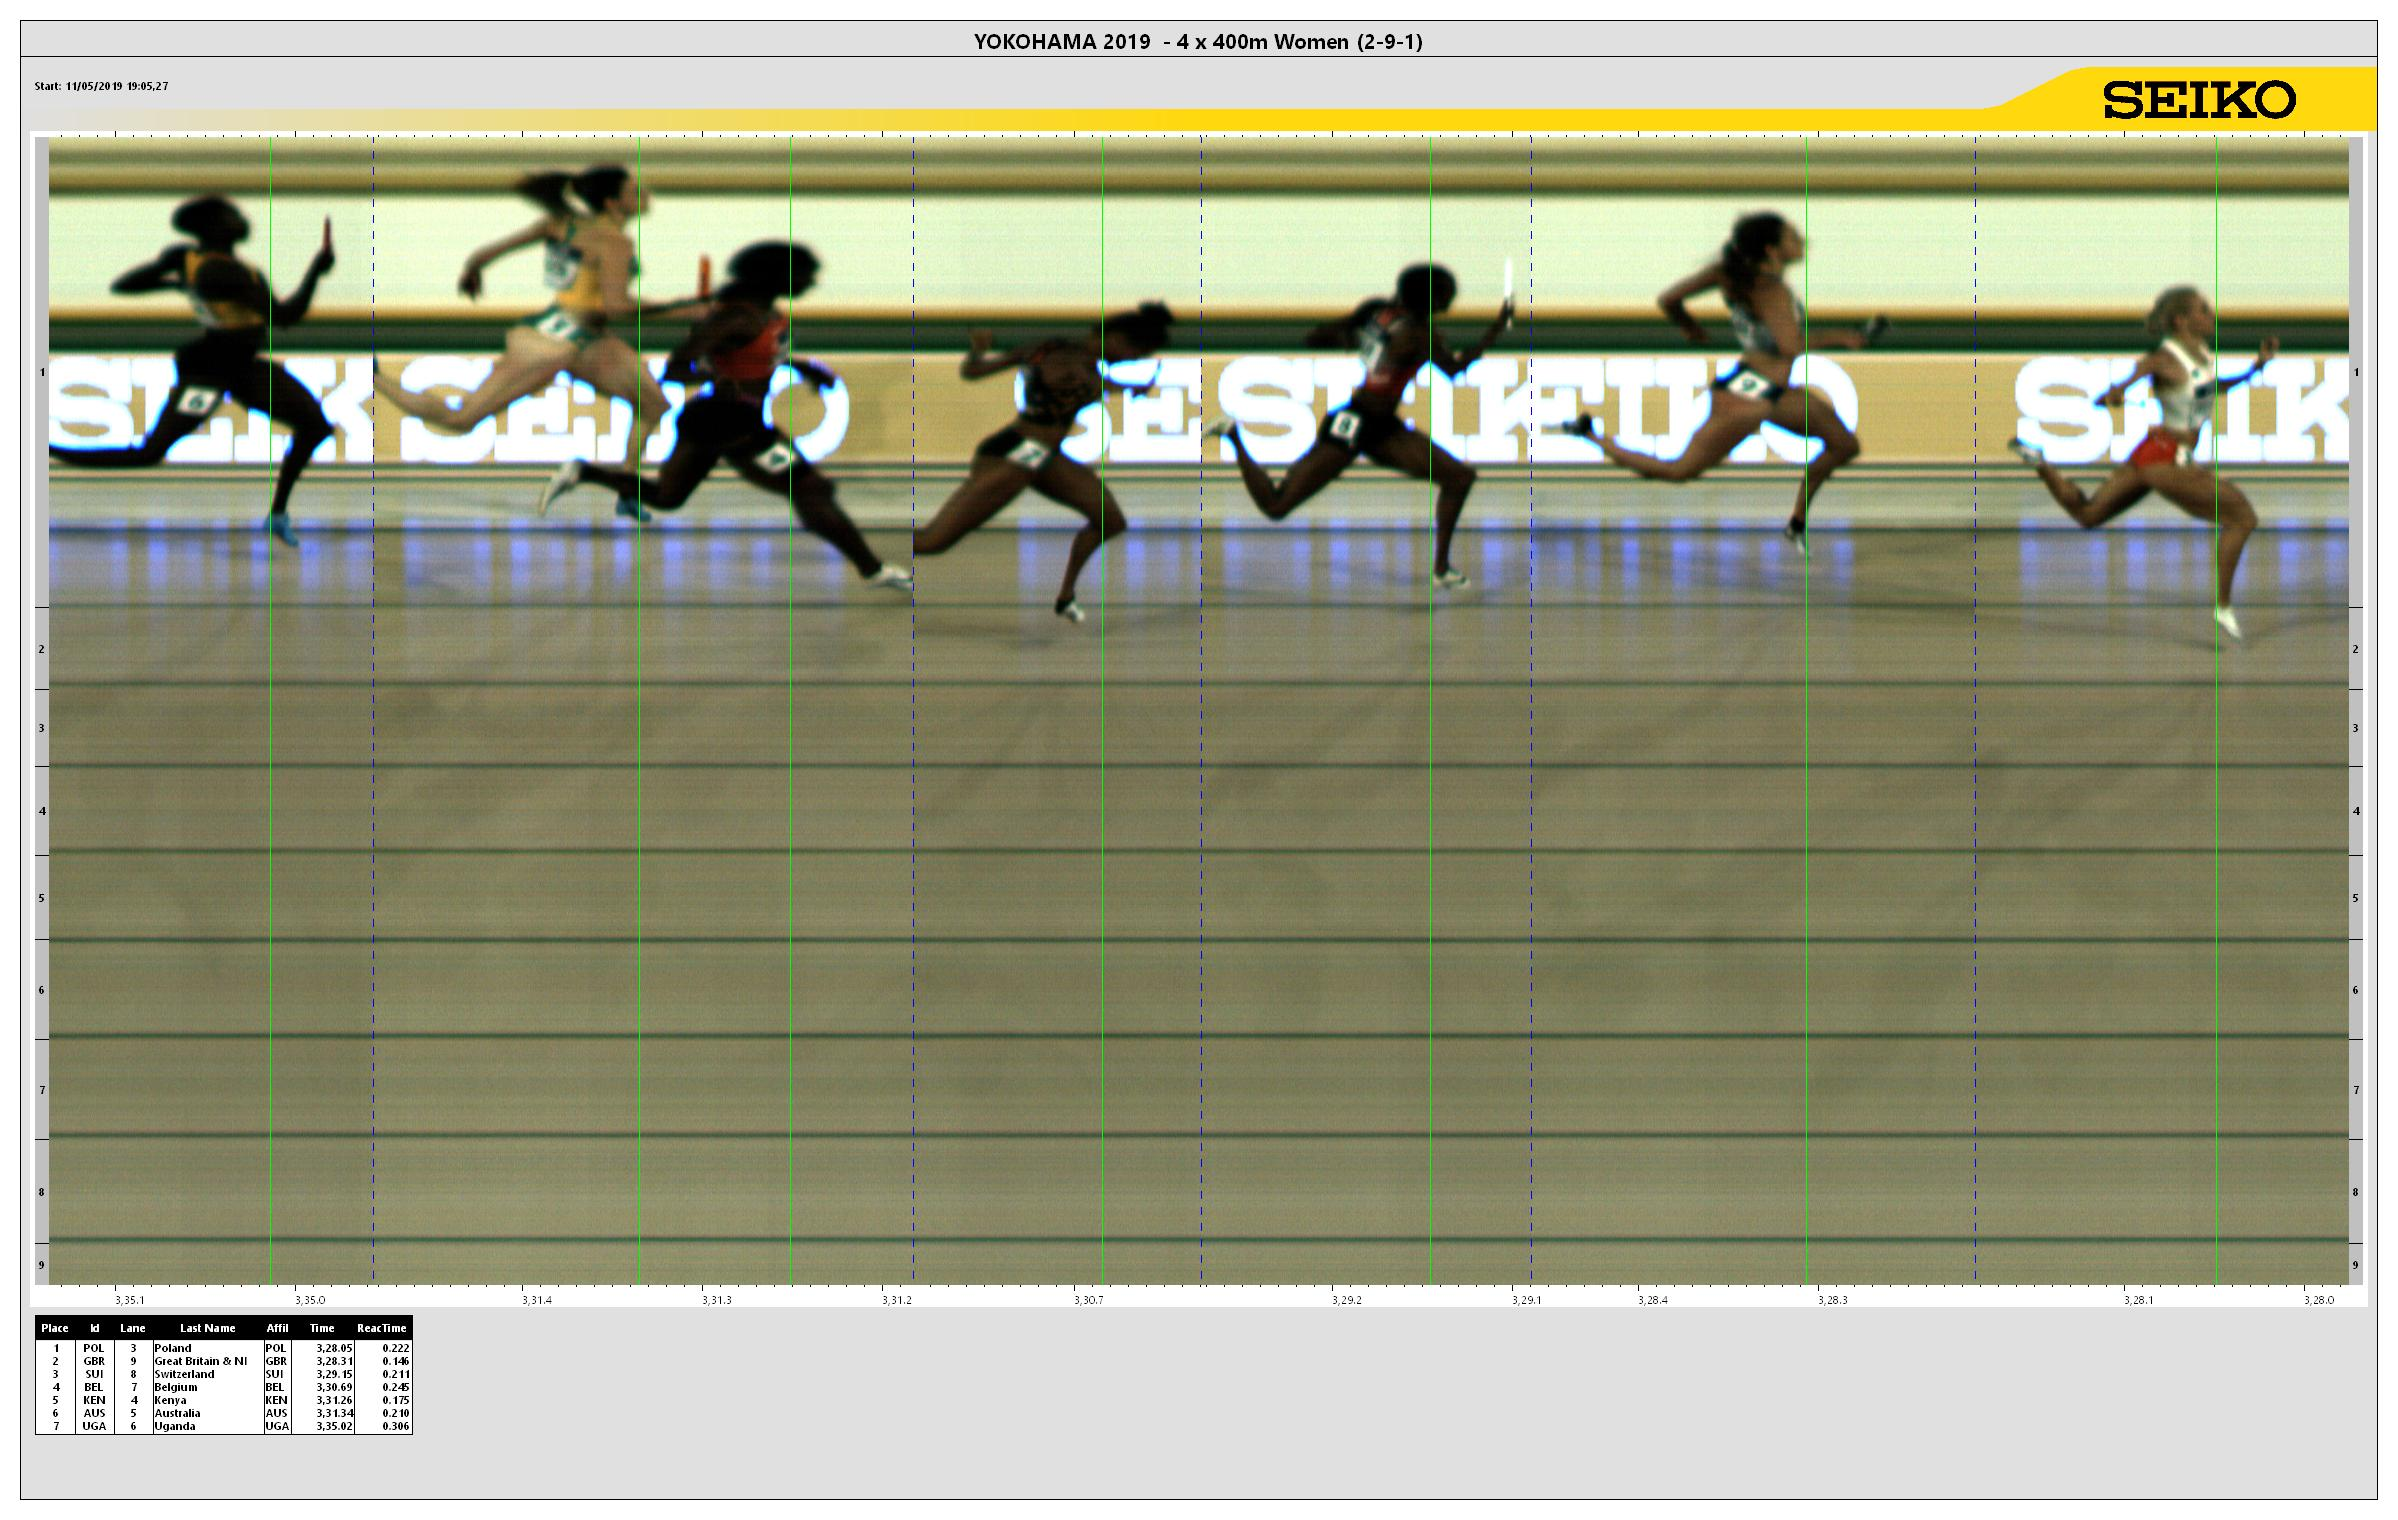 4x400 Metres Relay Result